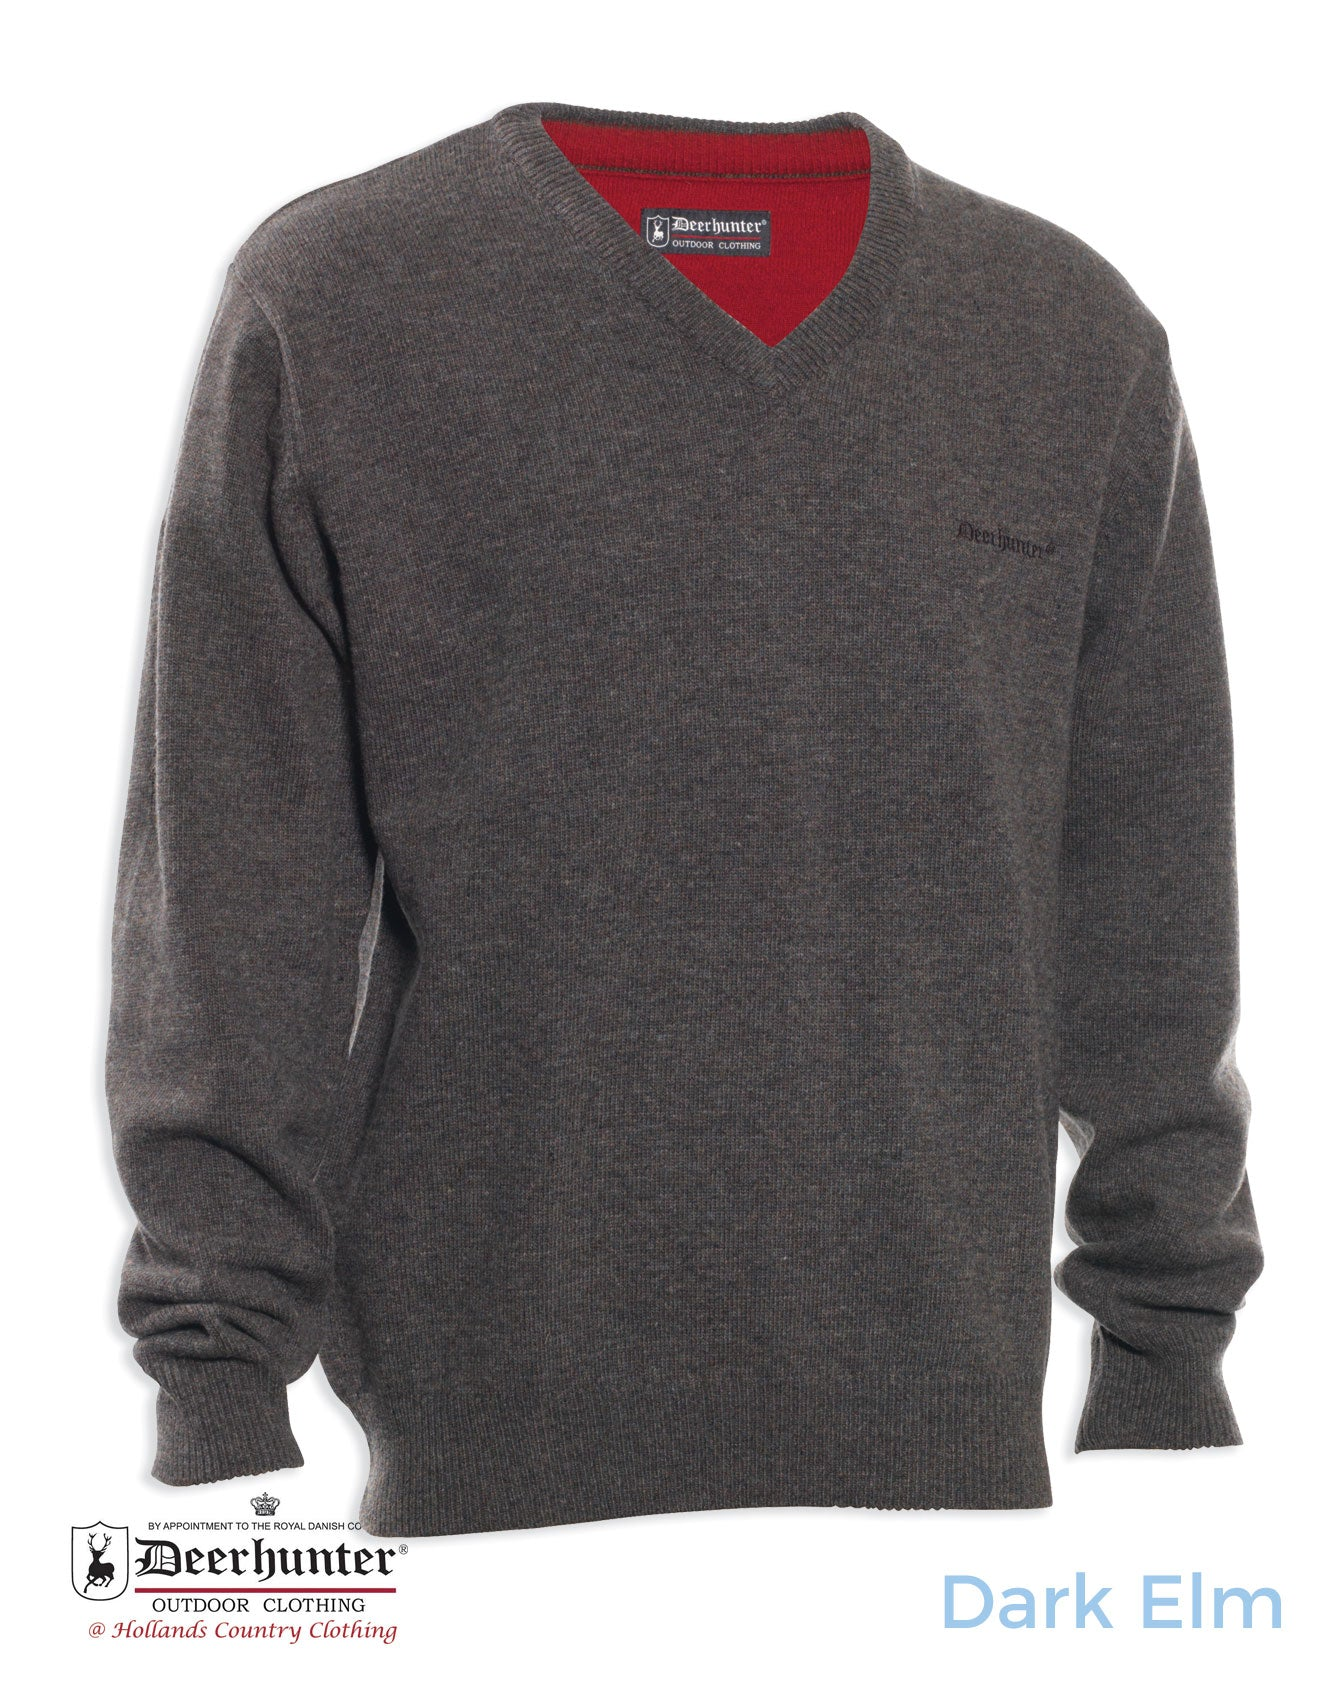 Deerhunter Hastings Knit Vee-neck Sweater dark elm colour